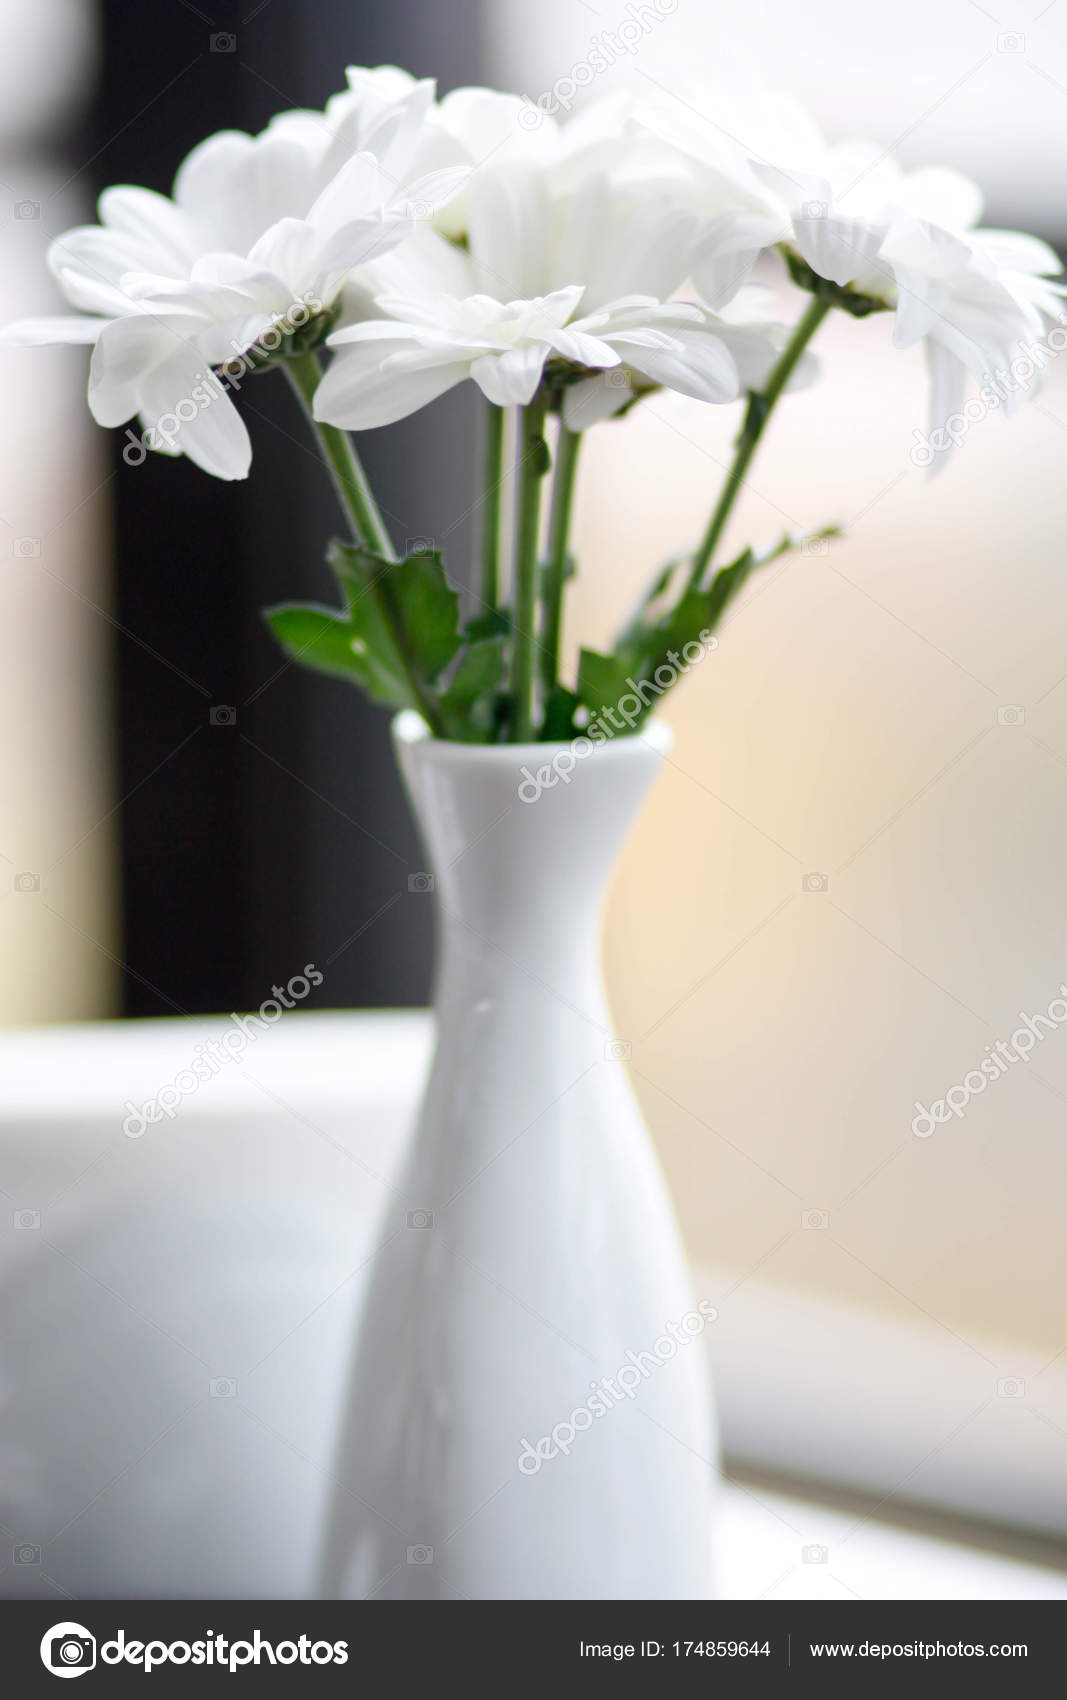 Beautiful simple white porcelain vase with delicate white flower beautiful simple white porcelain vase with delicate white flower stock photo mightylinksfo